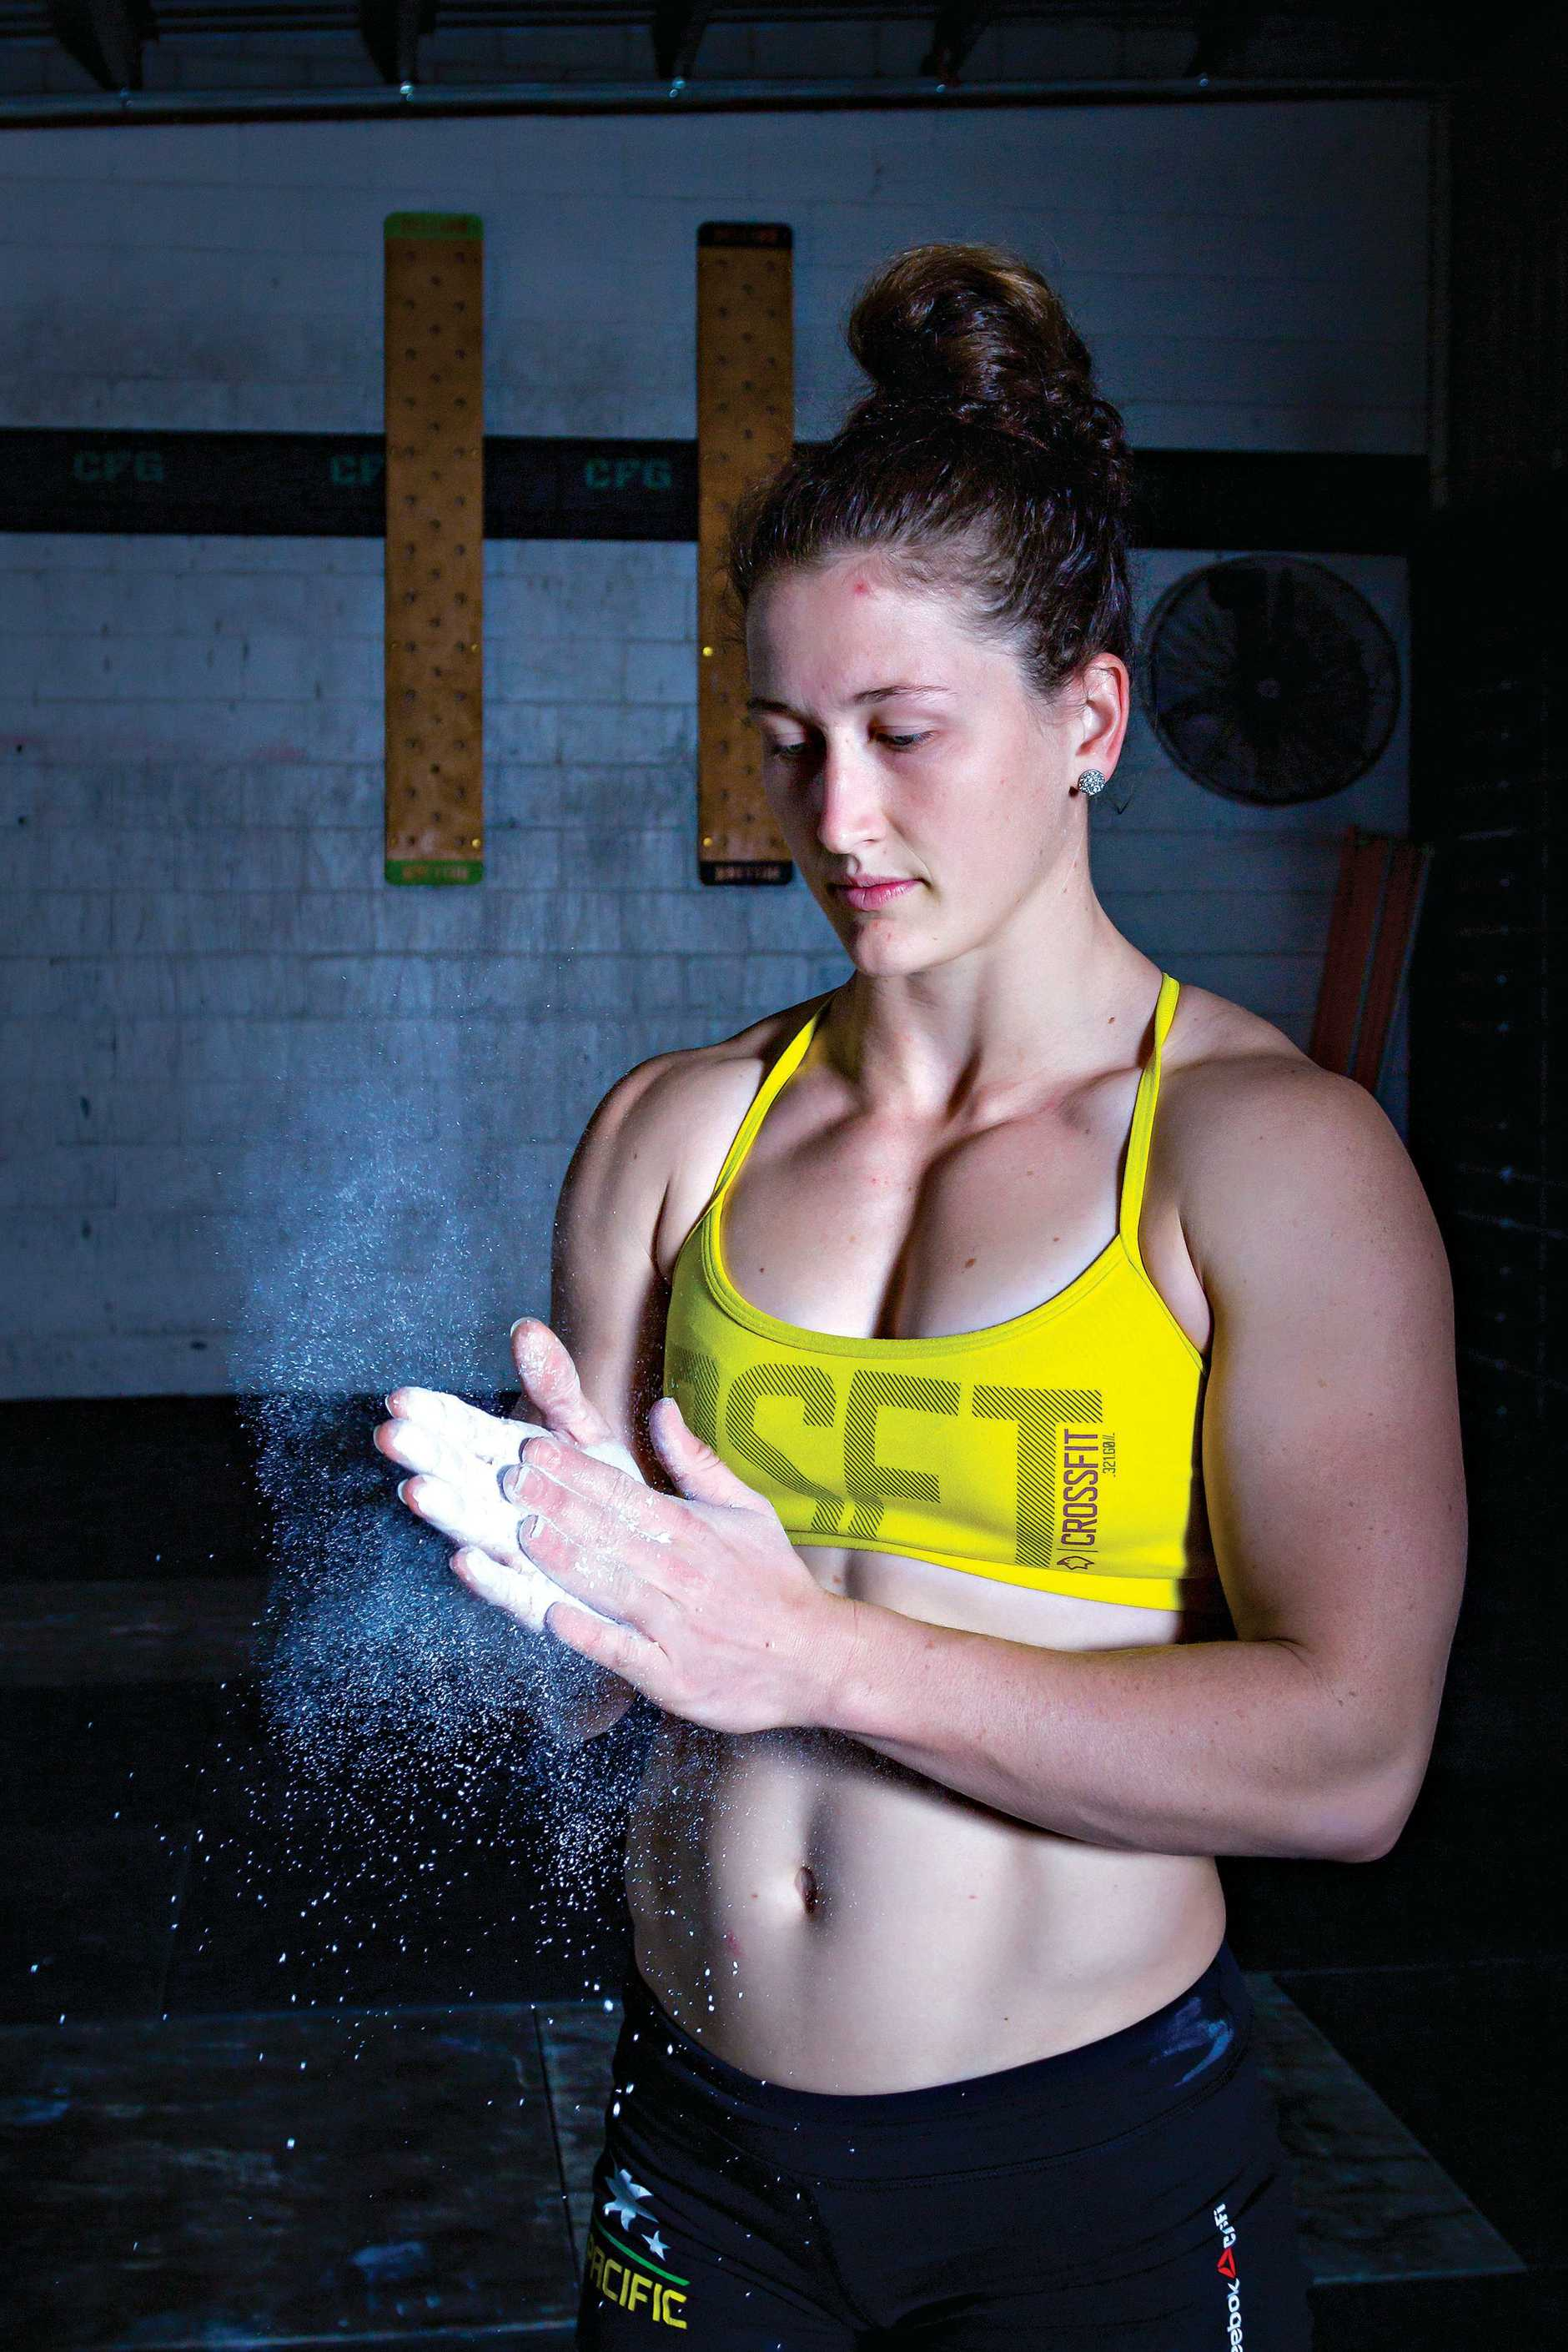 Tia-Clair Toomey encourages others to find the kind of fit that suits them best.